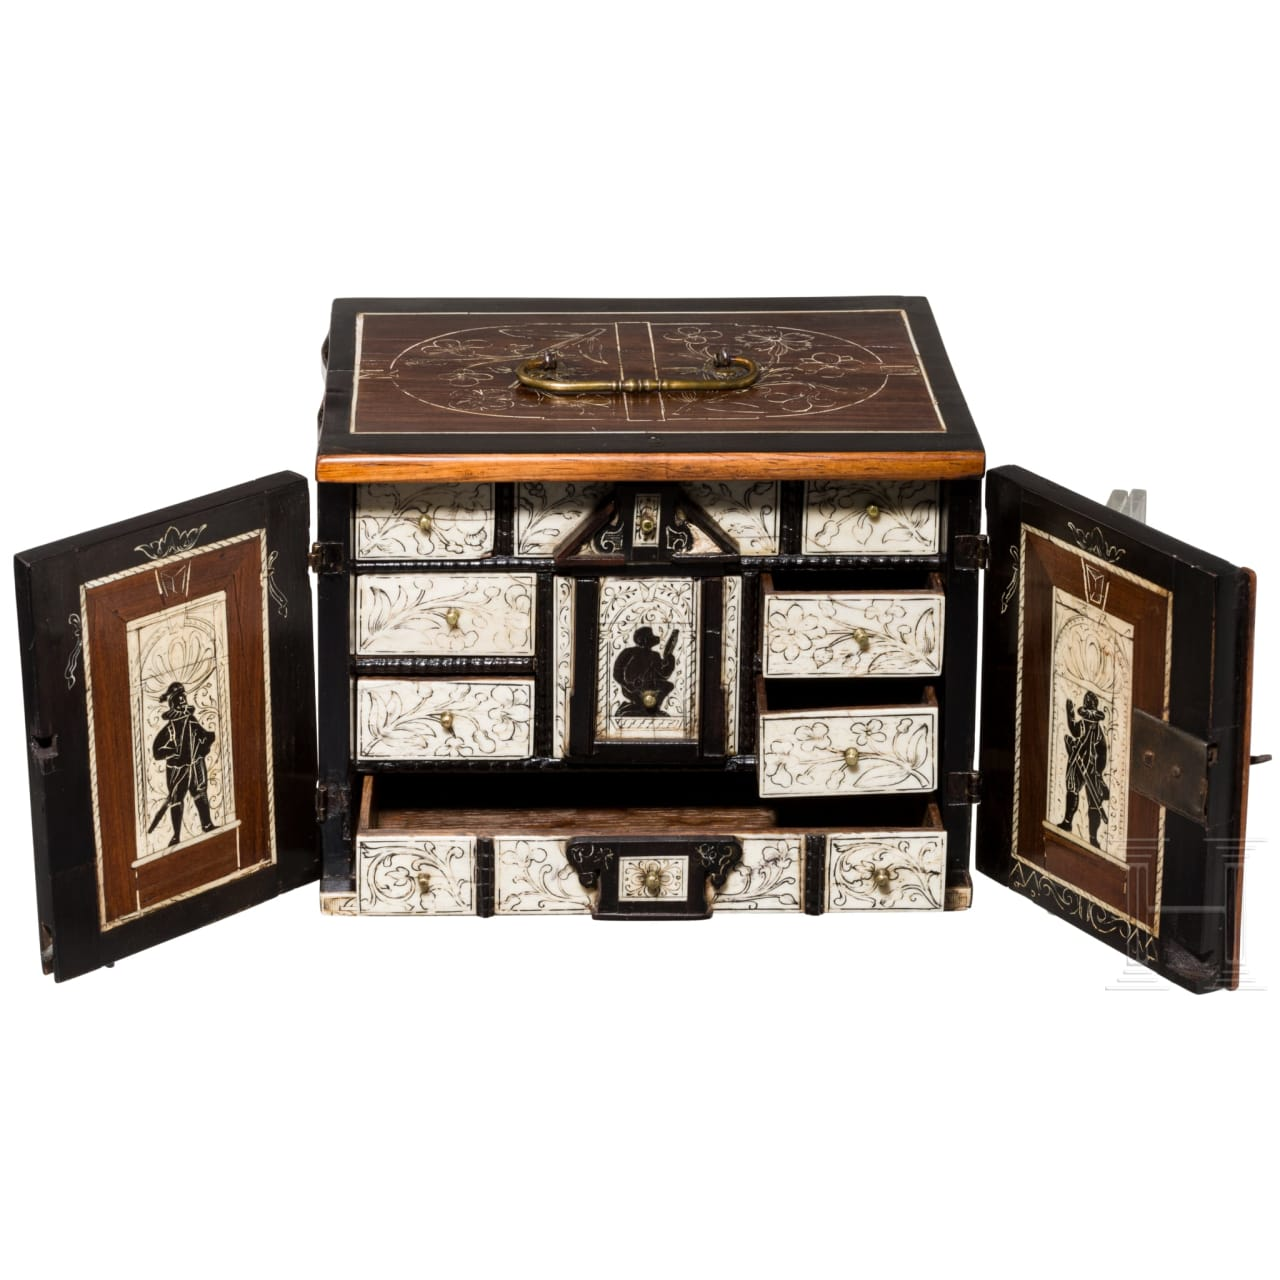 A miniature cabinet with ivory and bone panels, stamped with pinecone mark for Augsburg, 17th century